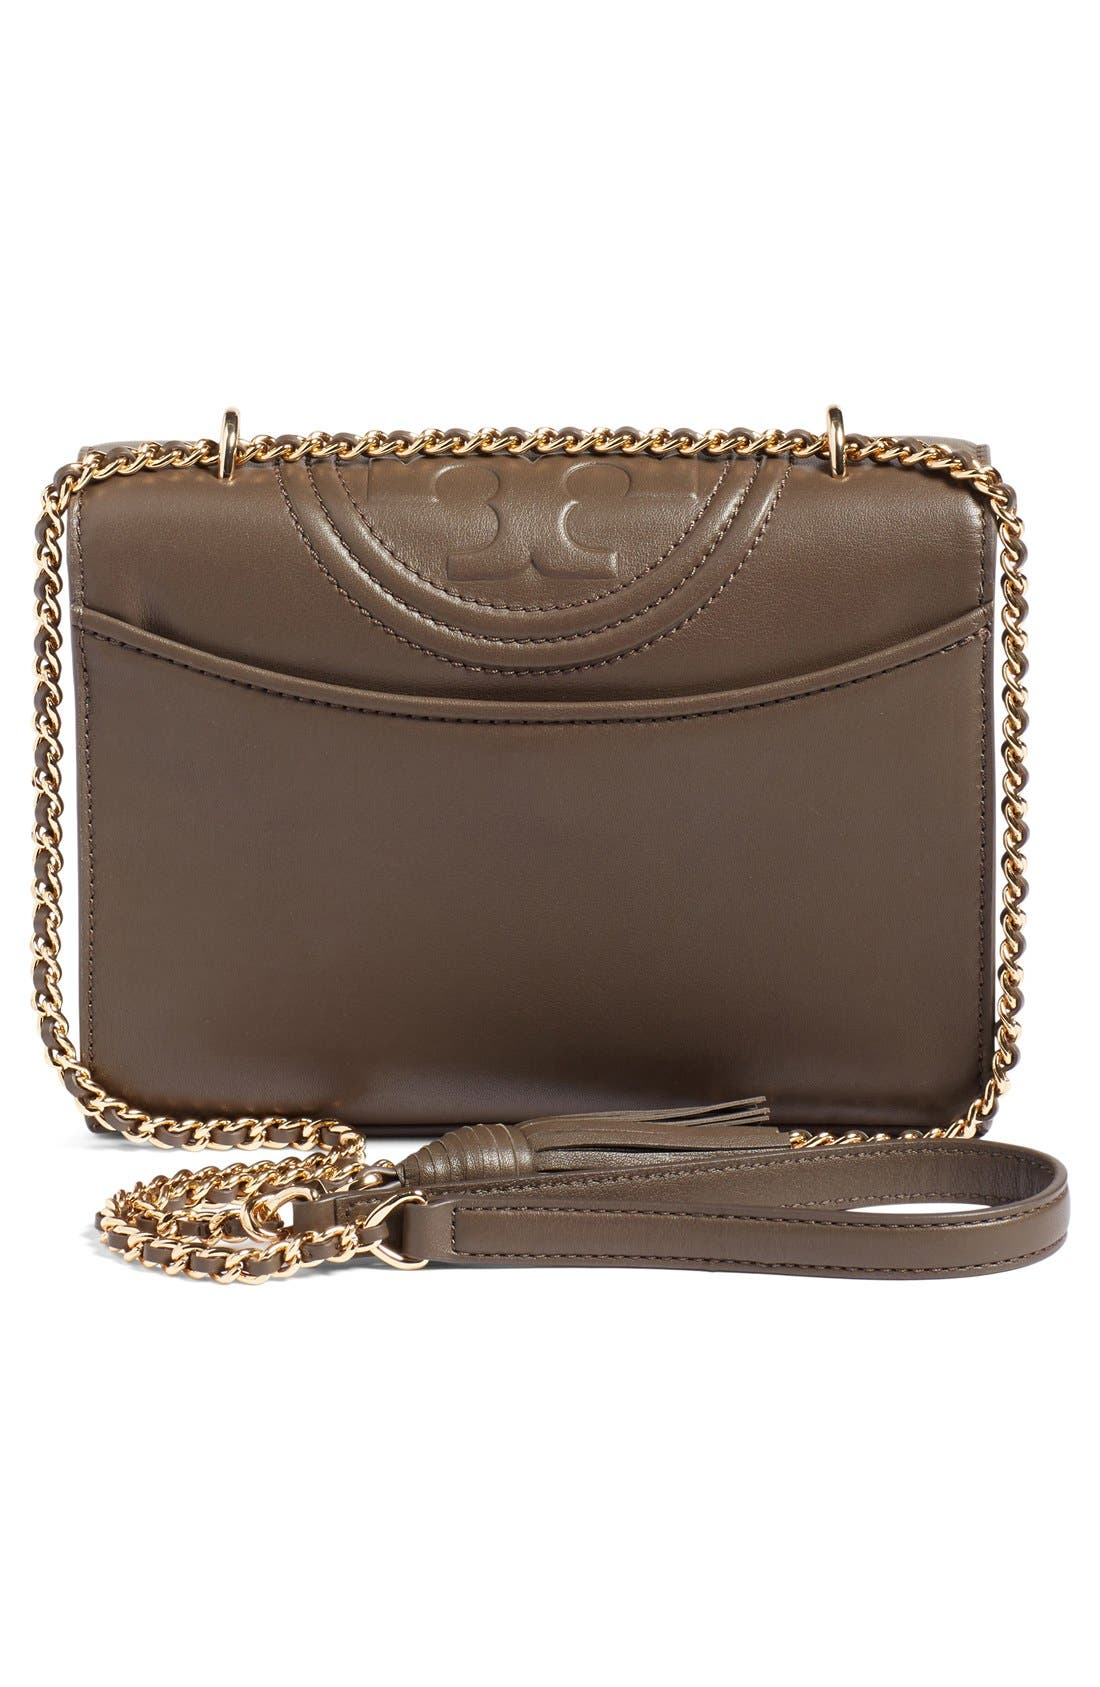 Alternate Image 3  - Tory Burch 'Fleming Stripe' Convertible Crossbody Bag